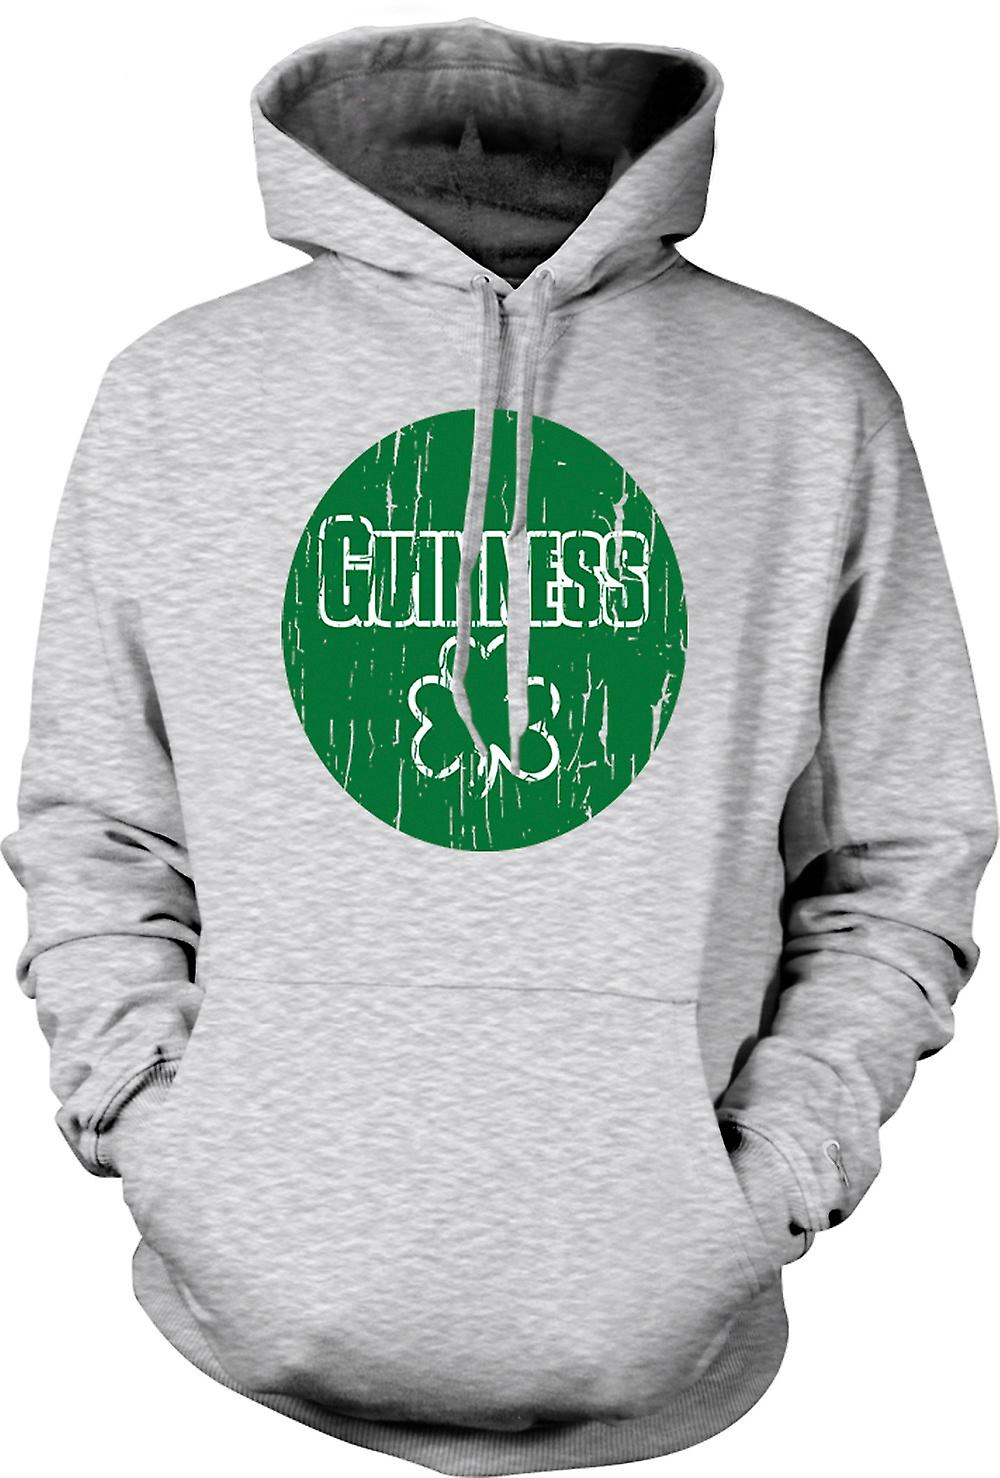 Mens Hoodie - St Patricks Day Irish Guiness